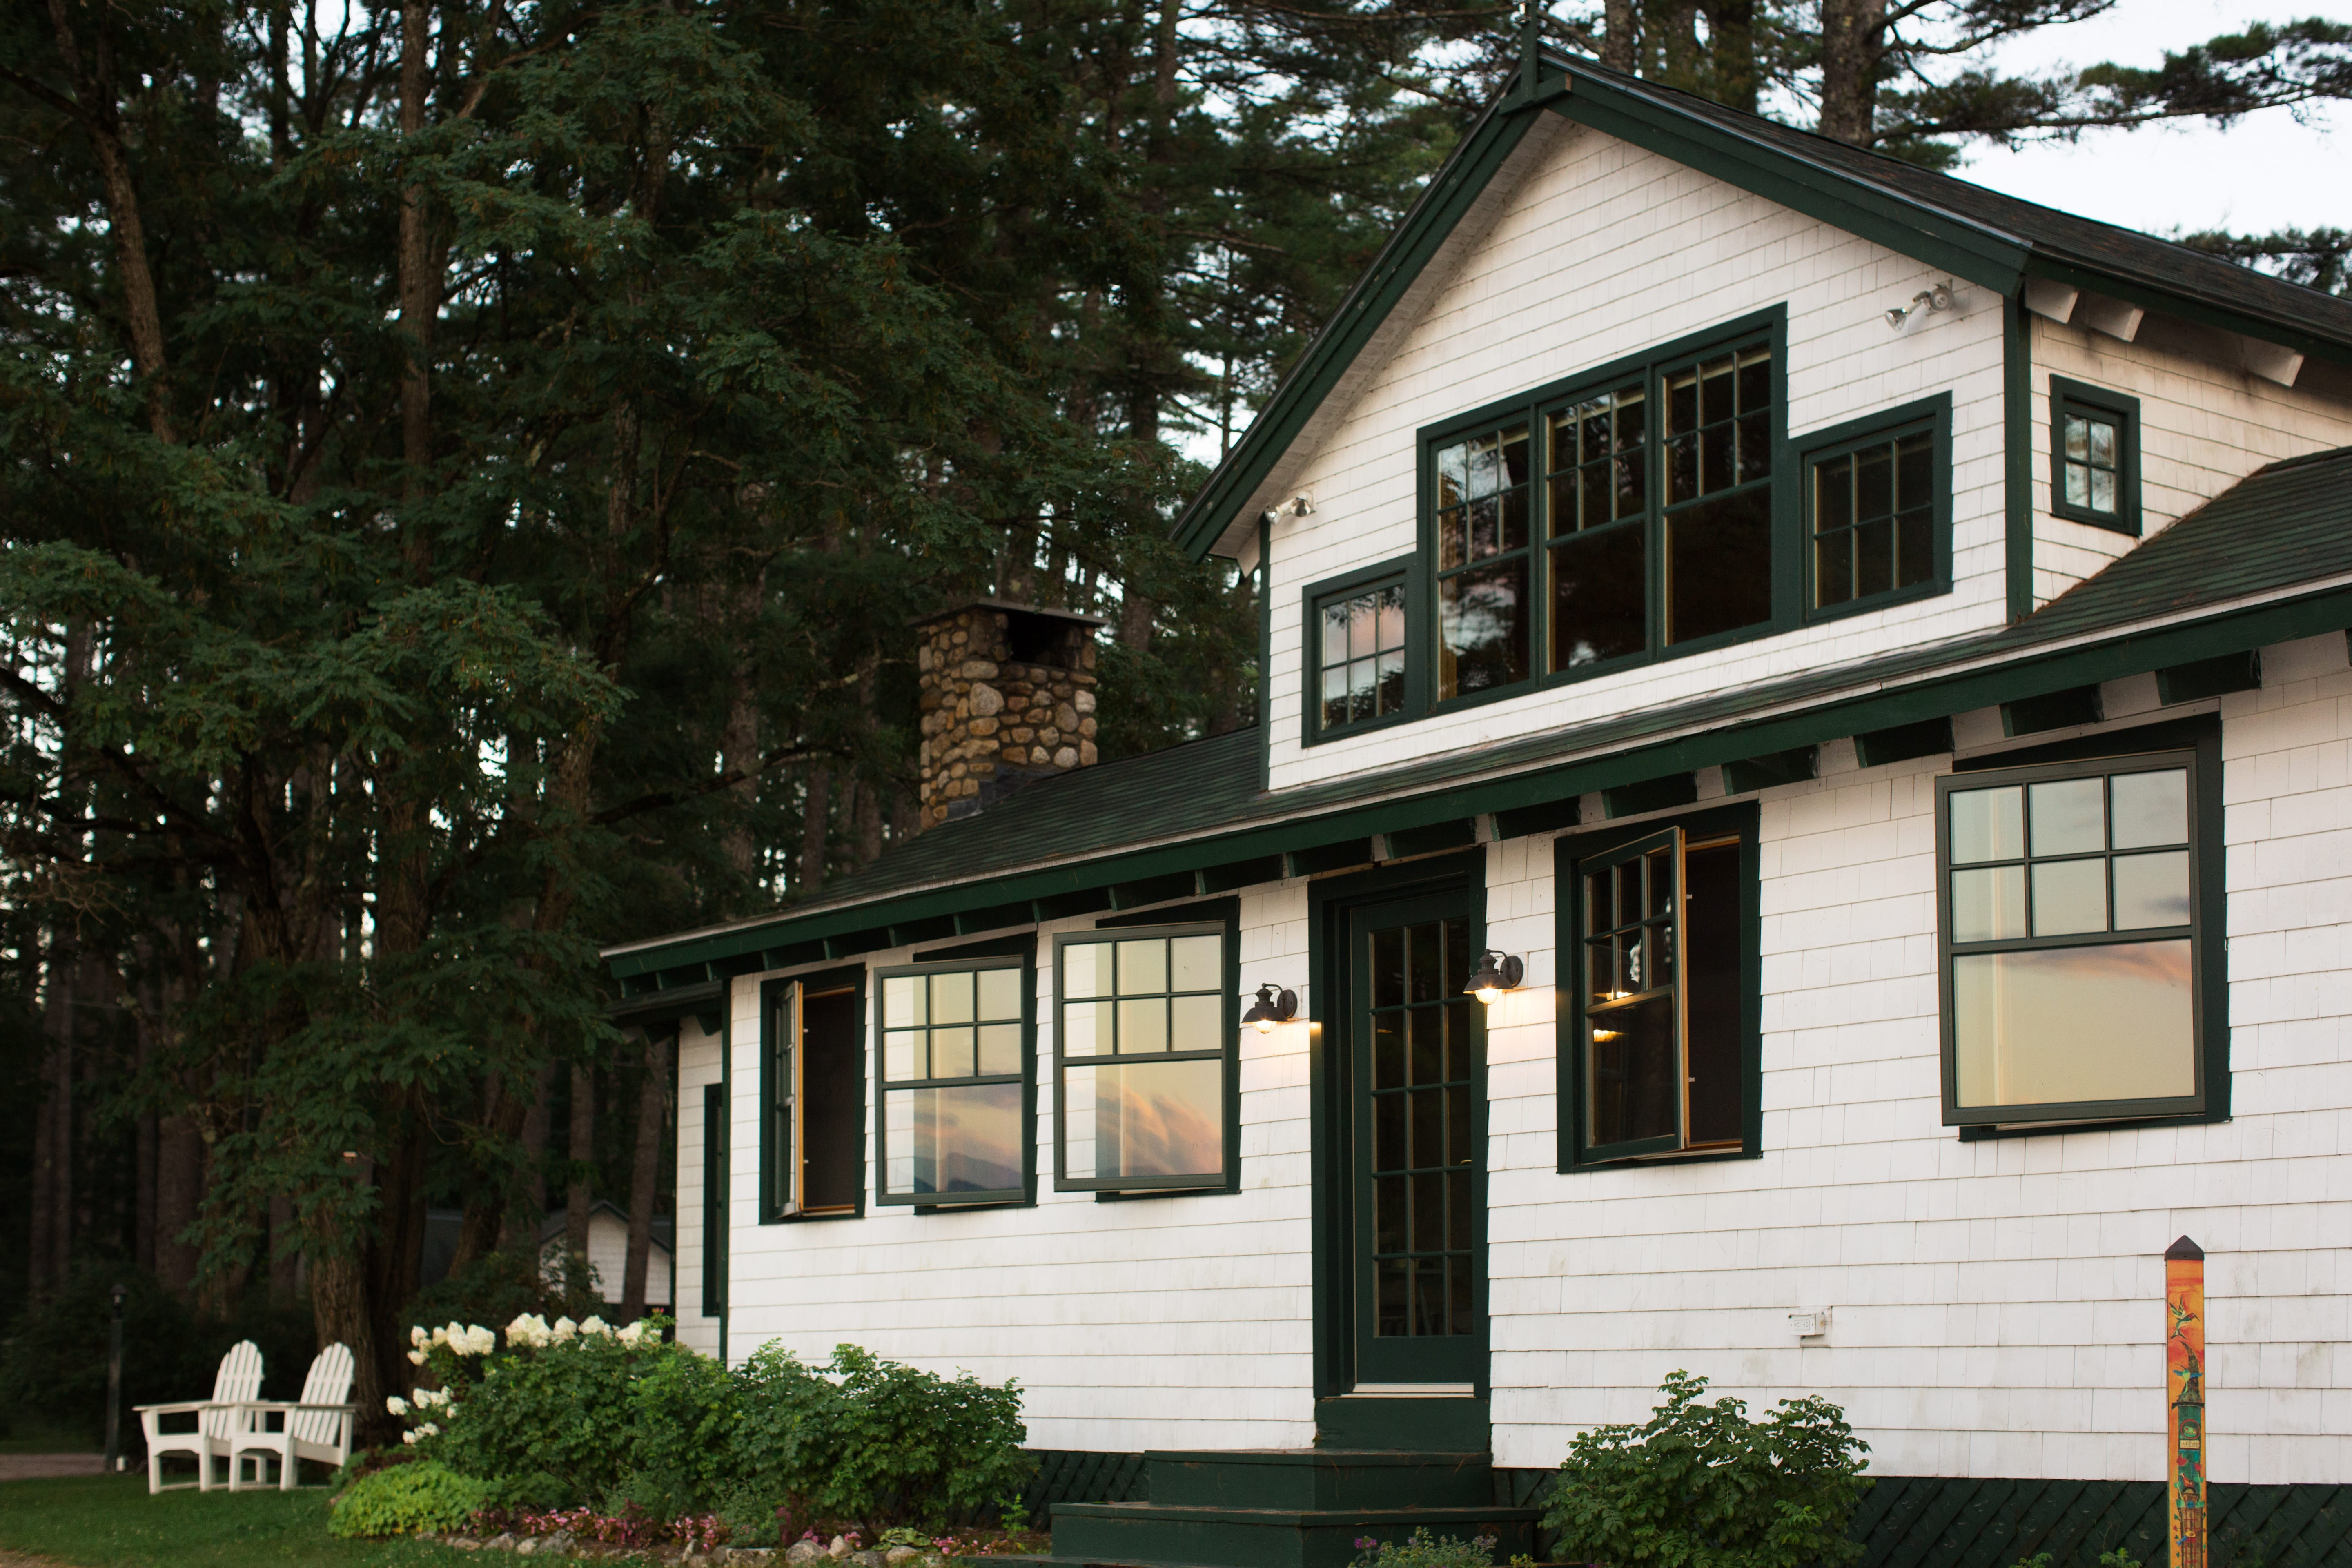 Green and white cottage